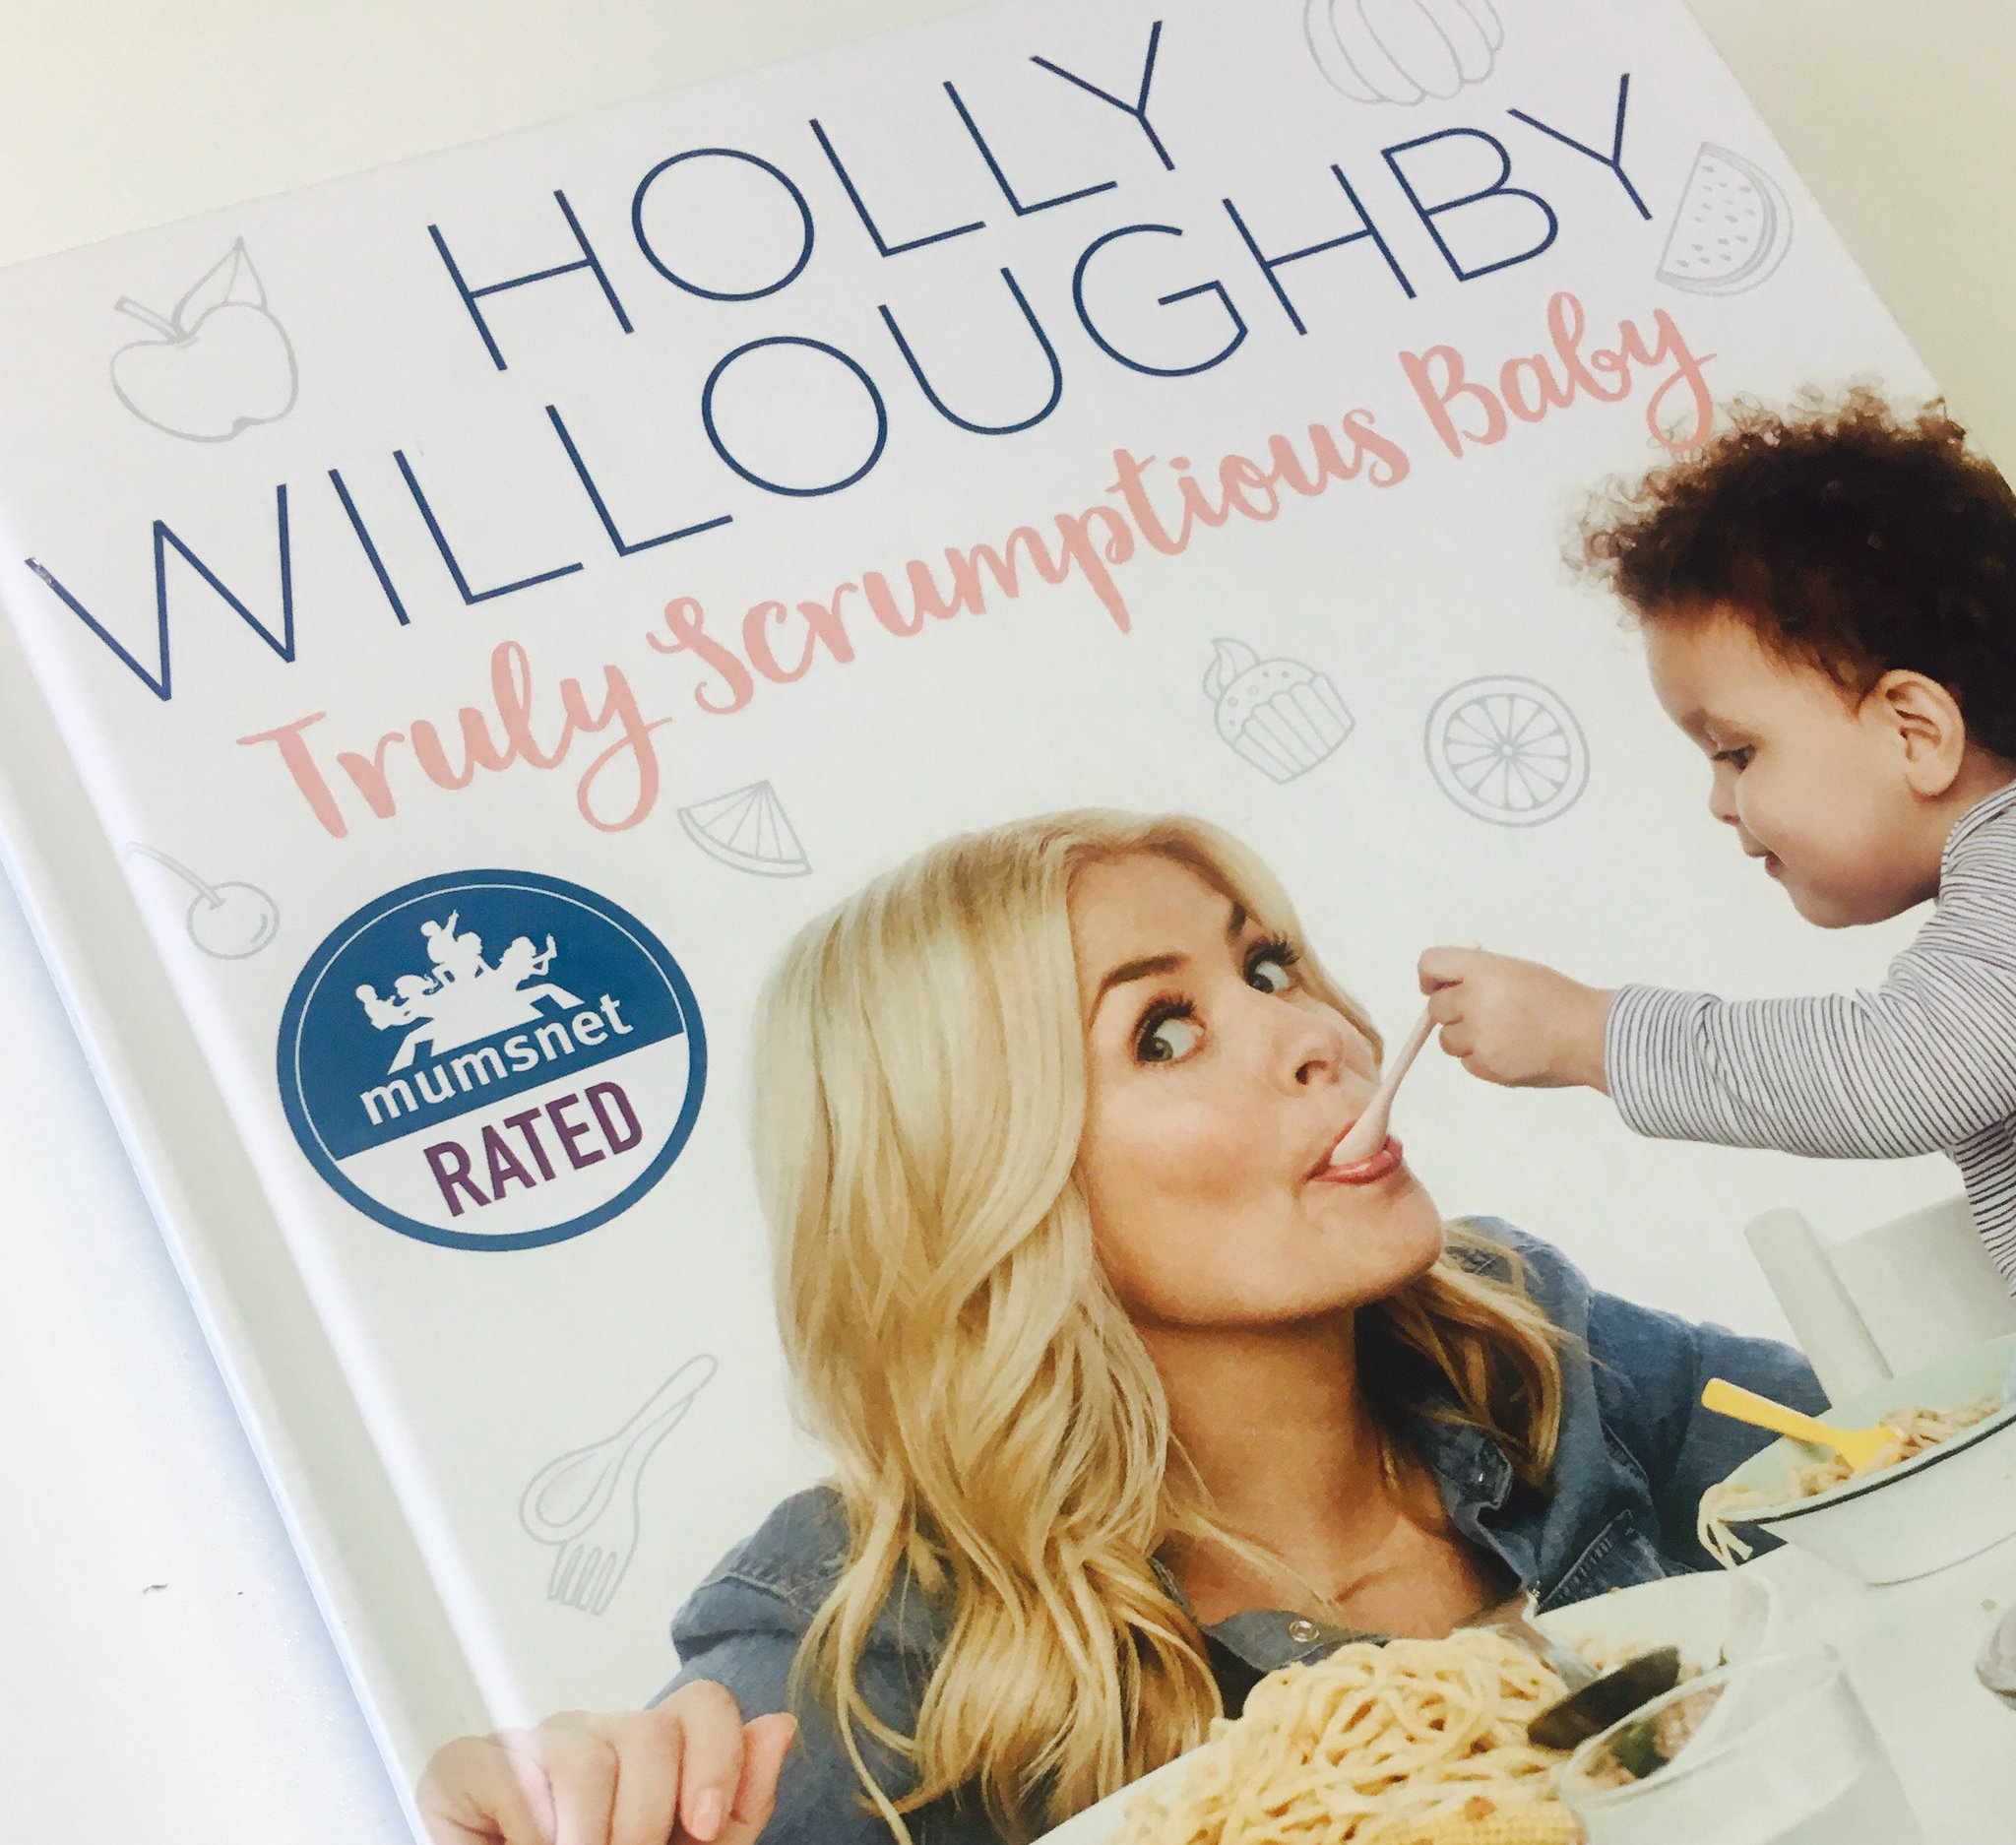 Thrilled that #TrulyScrumptiousBaby has been given the official Mumsnet seal of approval! Thank you @MumsnetTowers x https://t.co/wsZtgykPOw